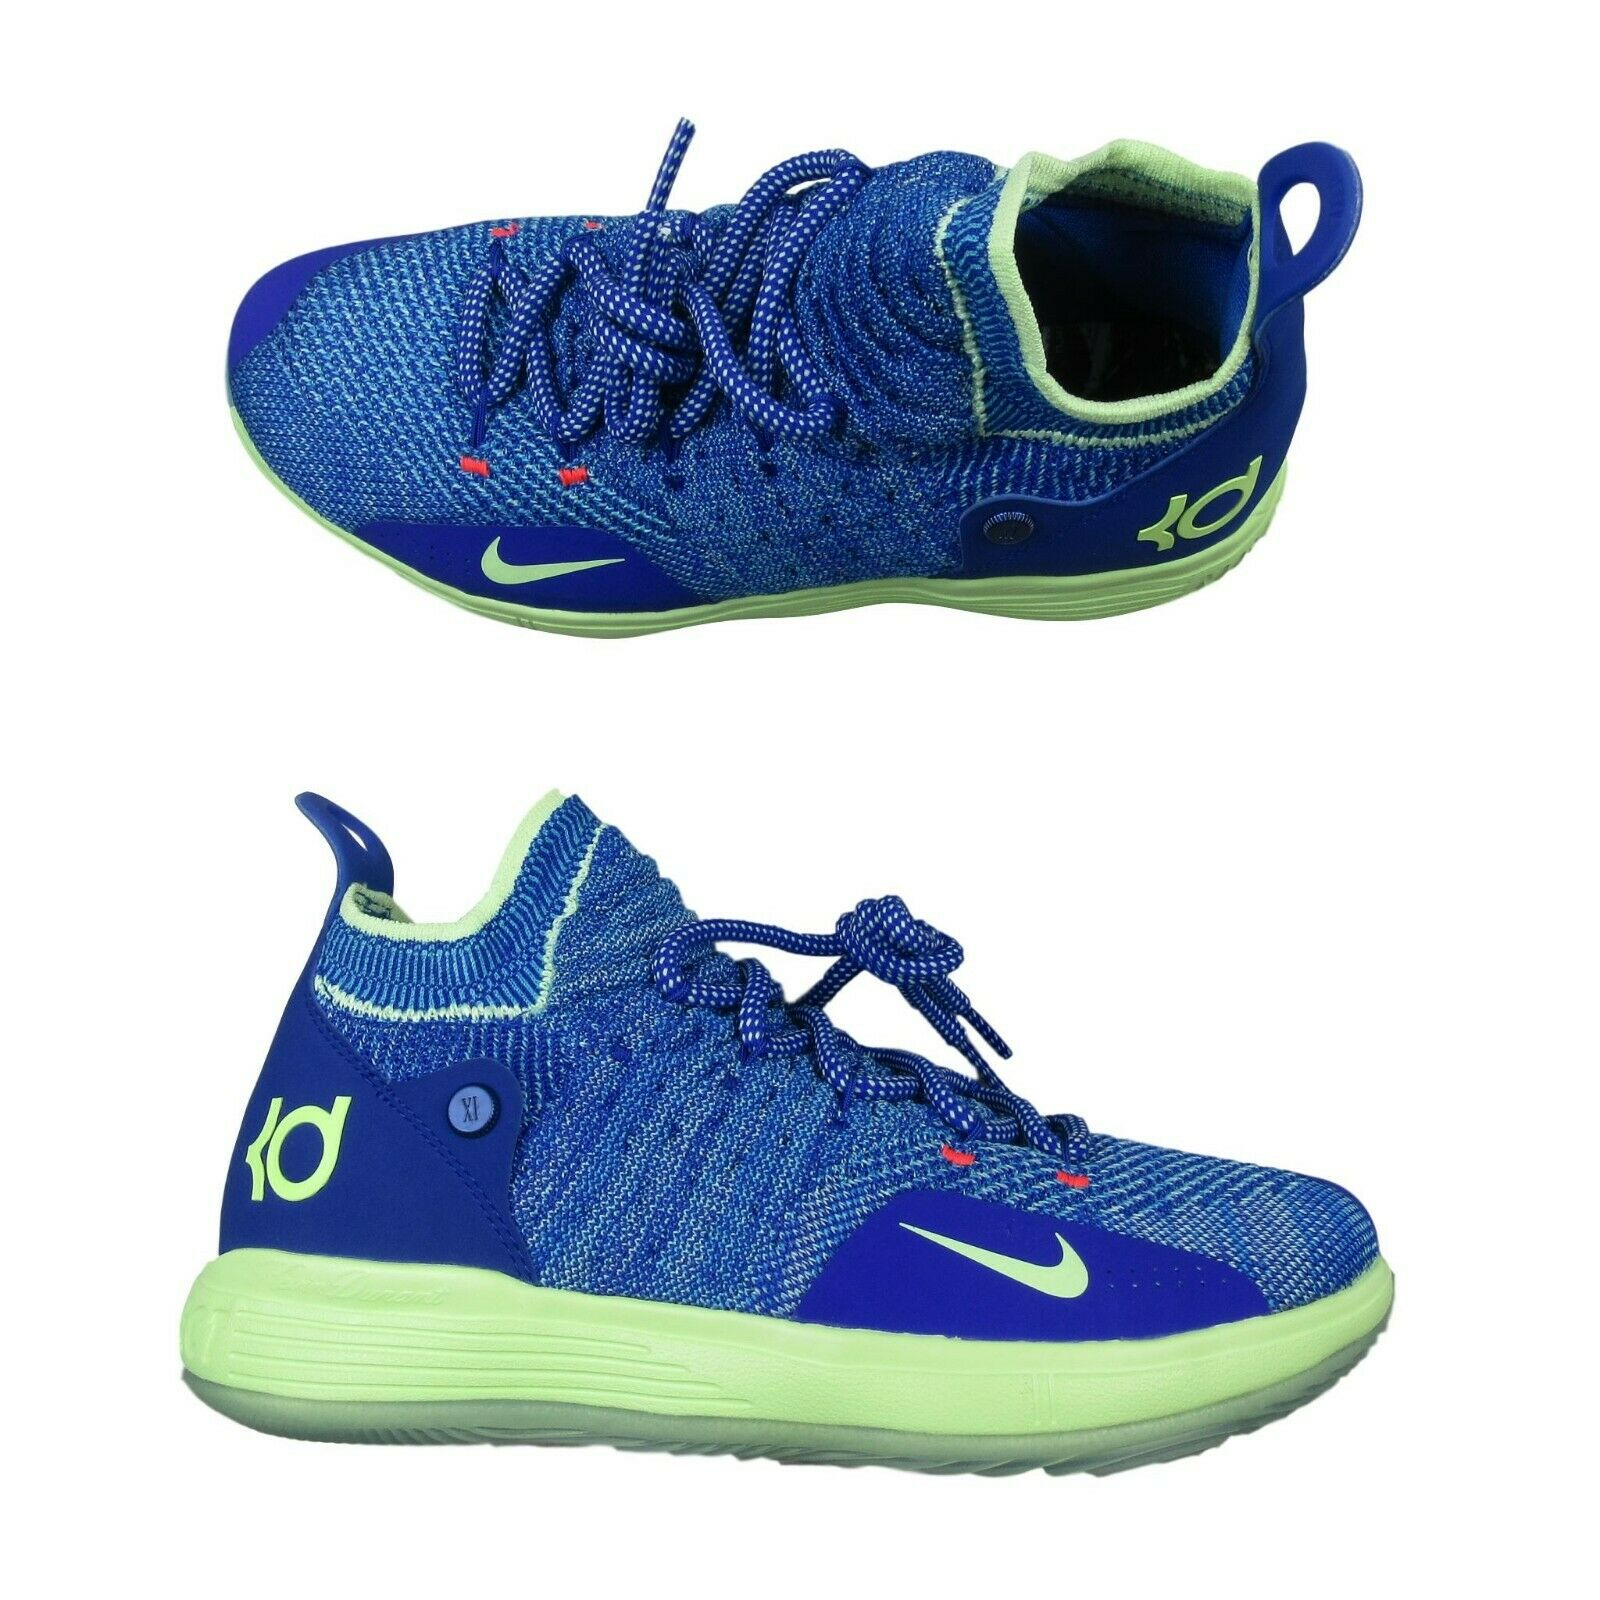 e4ee764ba690 Nike KD11 GS Basketball Shoes Blue Lime Green Size 7Y Womens 8.5 ...